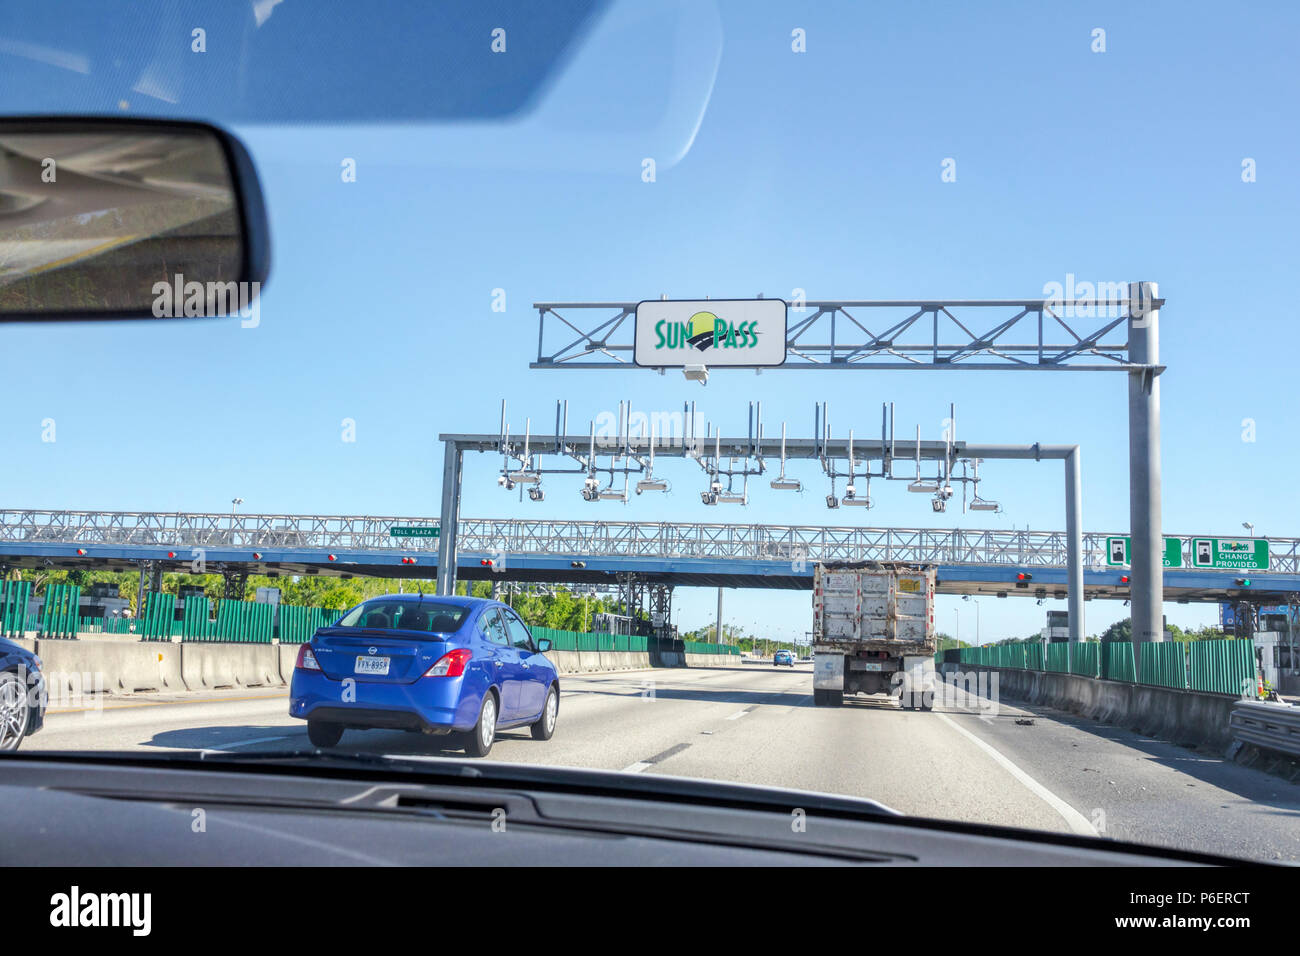 Florida Fort Ft. Lauderdale Florida Turnpike toll road SunPass prepaid electronic toll collection system traffic highway car truck moving vehicles - Stock Image